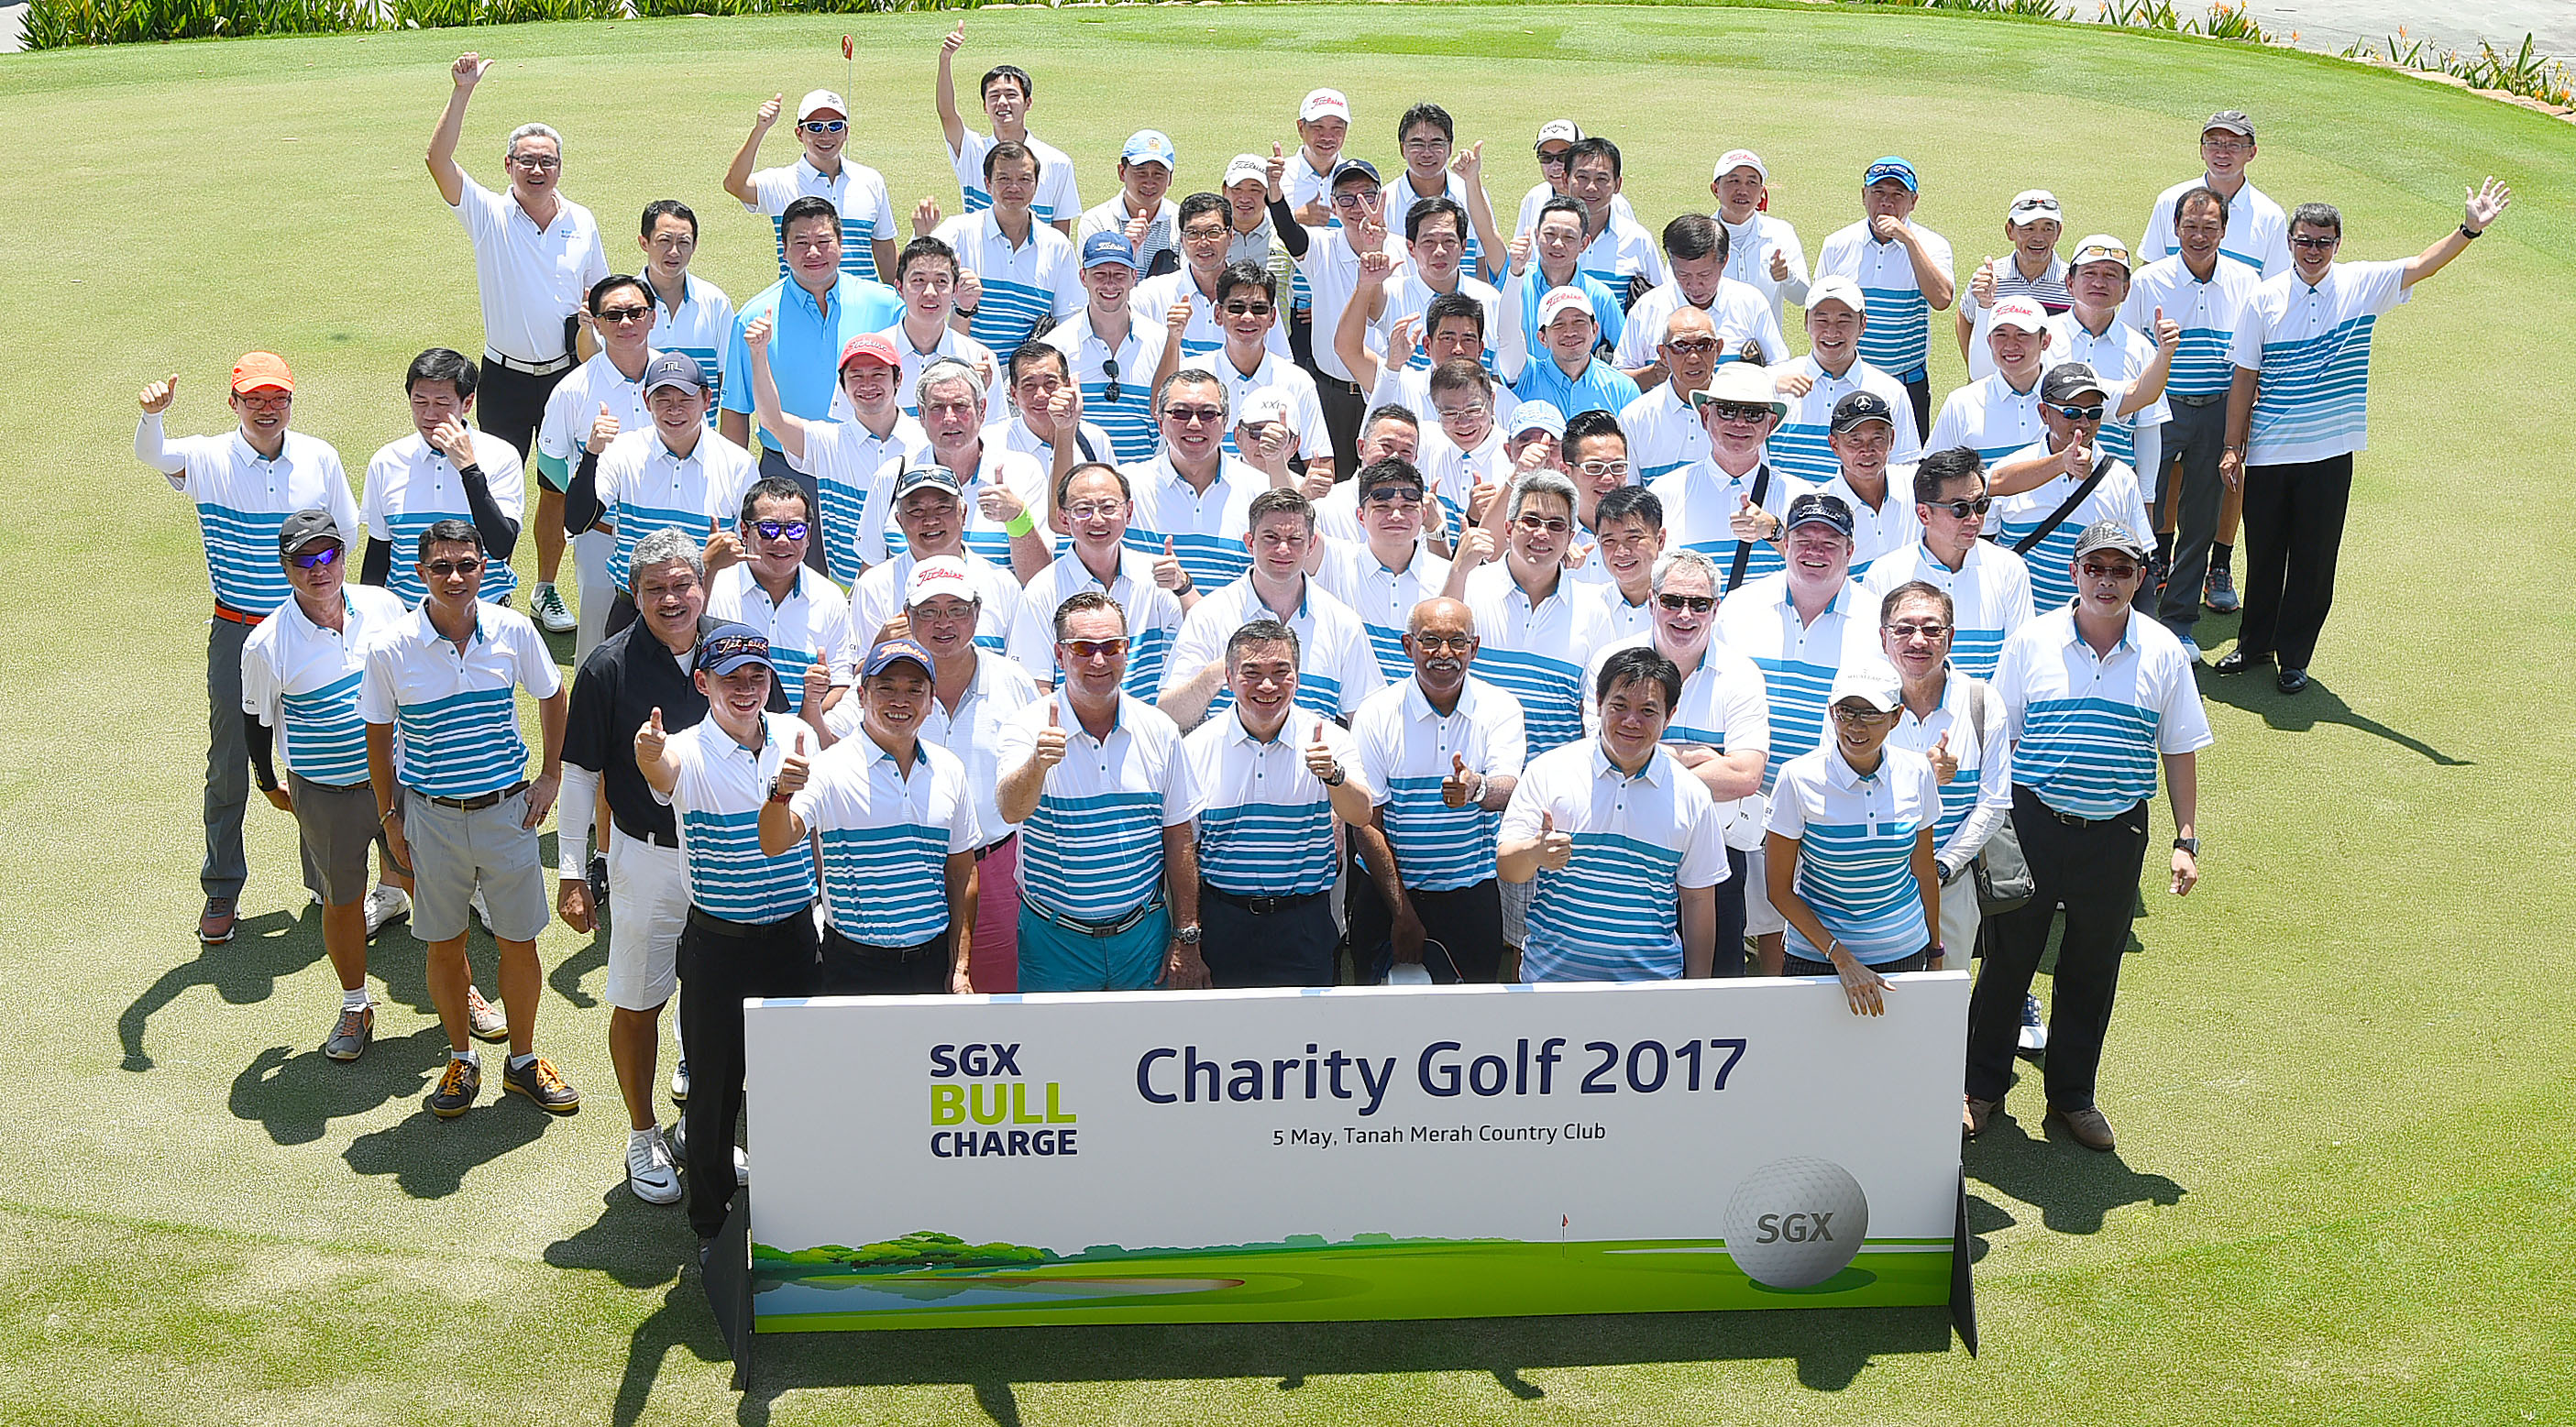 SGX Tees Off Bull Charge 2017 Article cover photo